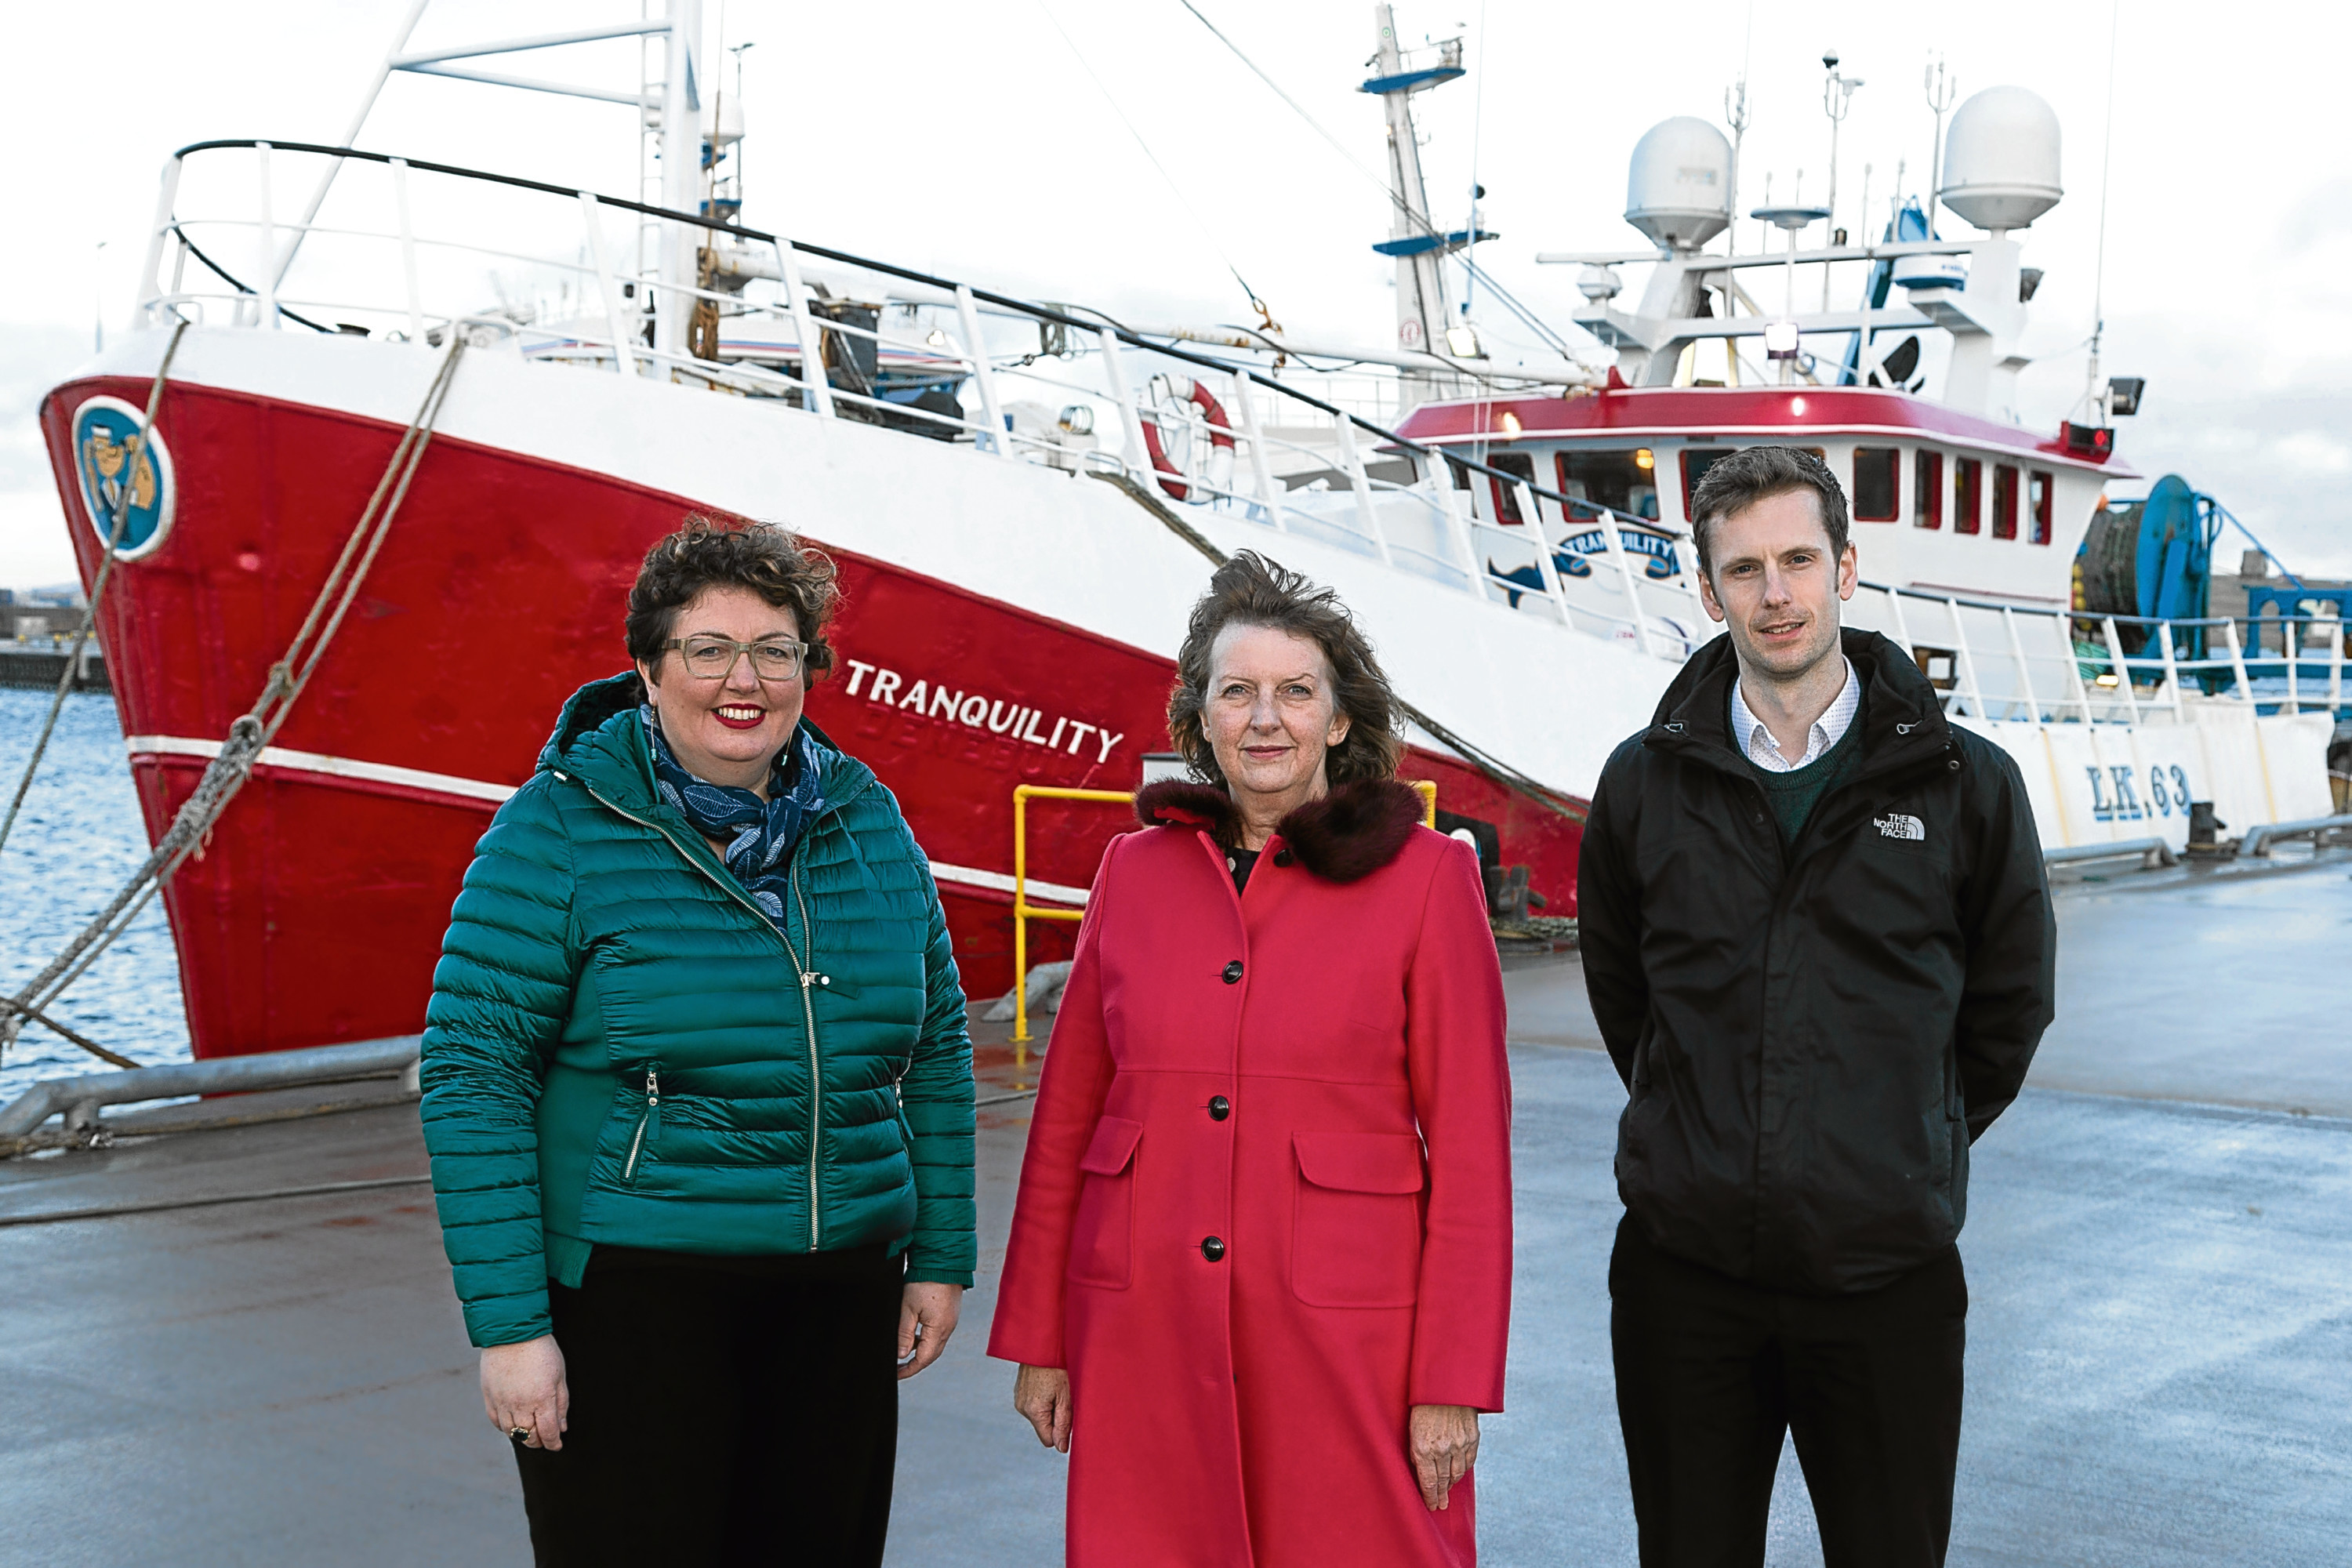 Plans for a new fish market in Lerwick have taken another step forward with Highlands and Islands Enterprise (HIE) approving funding of £586,879 to Lerwick Port Authority (LPA).